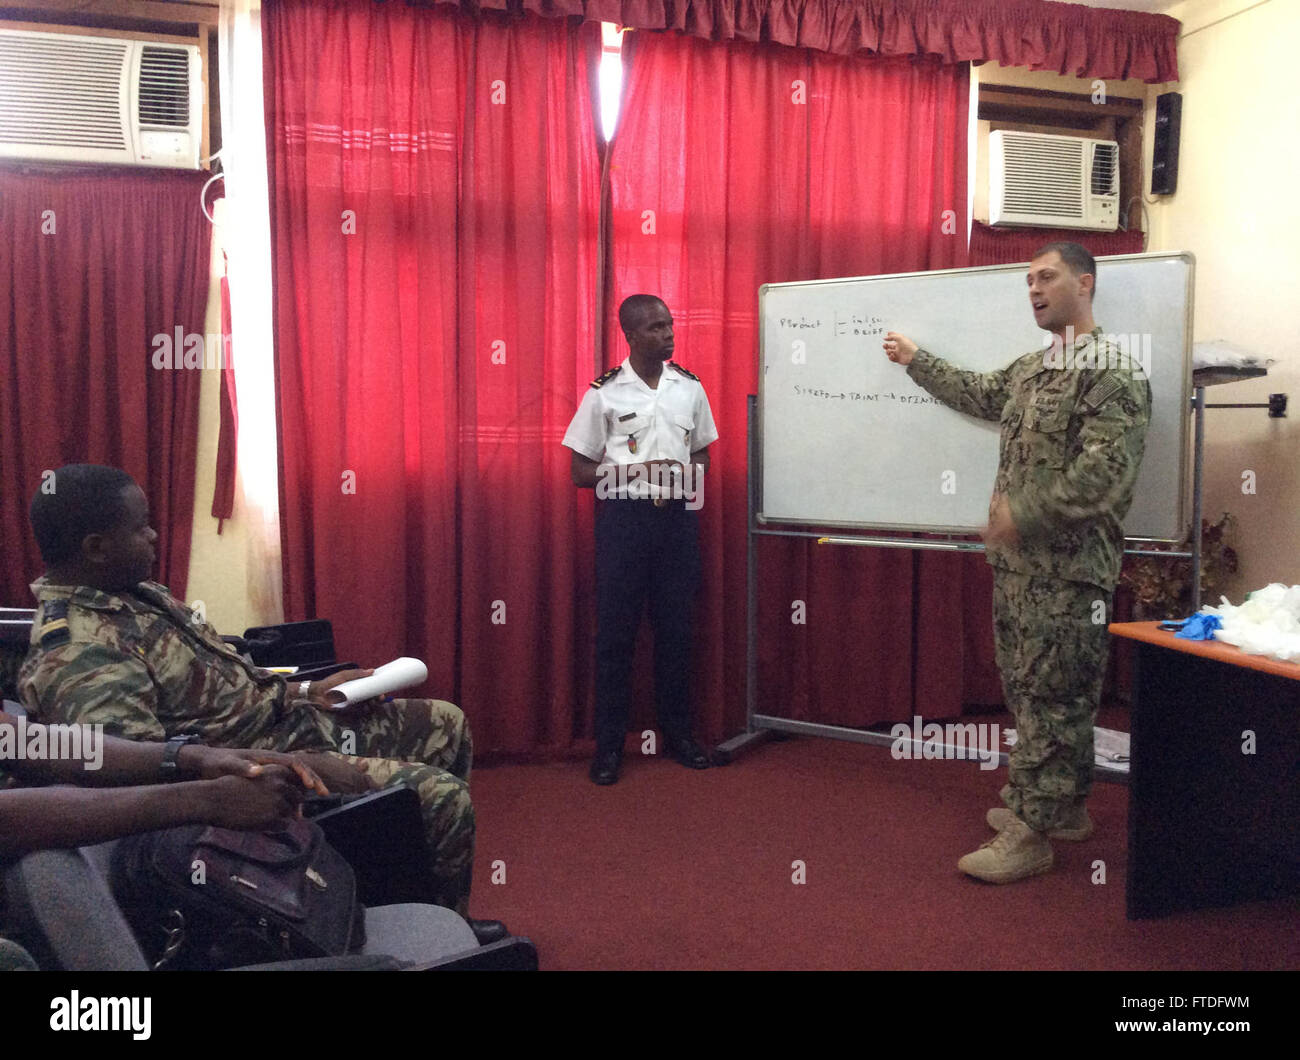 150923-M-ZZ999-300 DOUALA, Cameroon  (Sept. 23, 2015) Lt. Chris Jordan, intelligence officer for Commander, Task Stock Photo